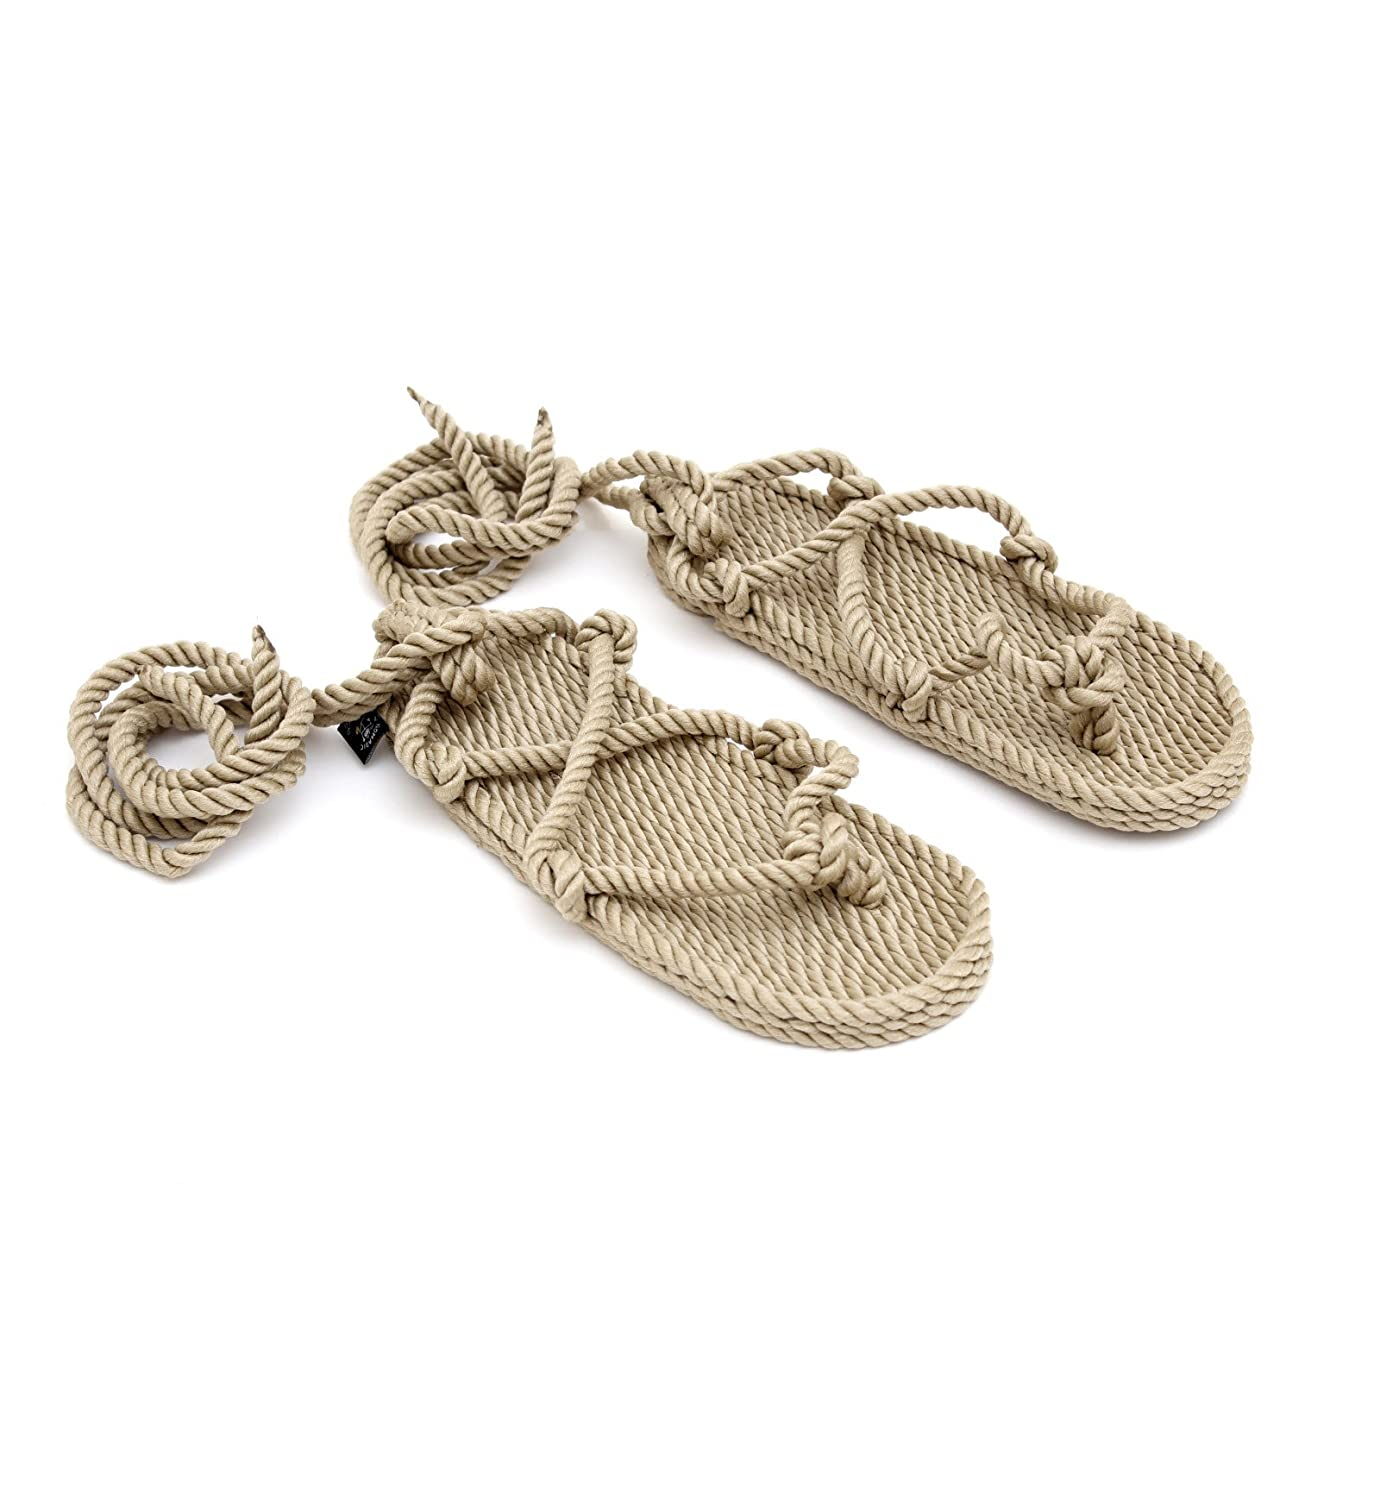 5c0572e3b02847 Nomadics romano women rope sandals shoes bags jpg 1380x1500 His rope sandals